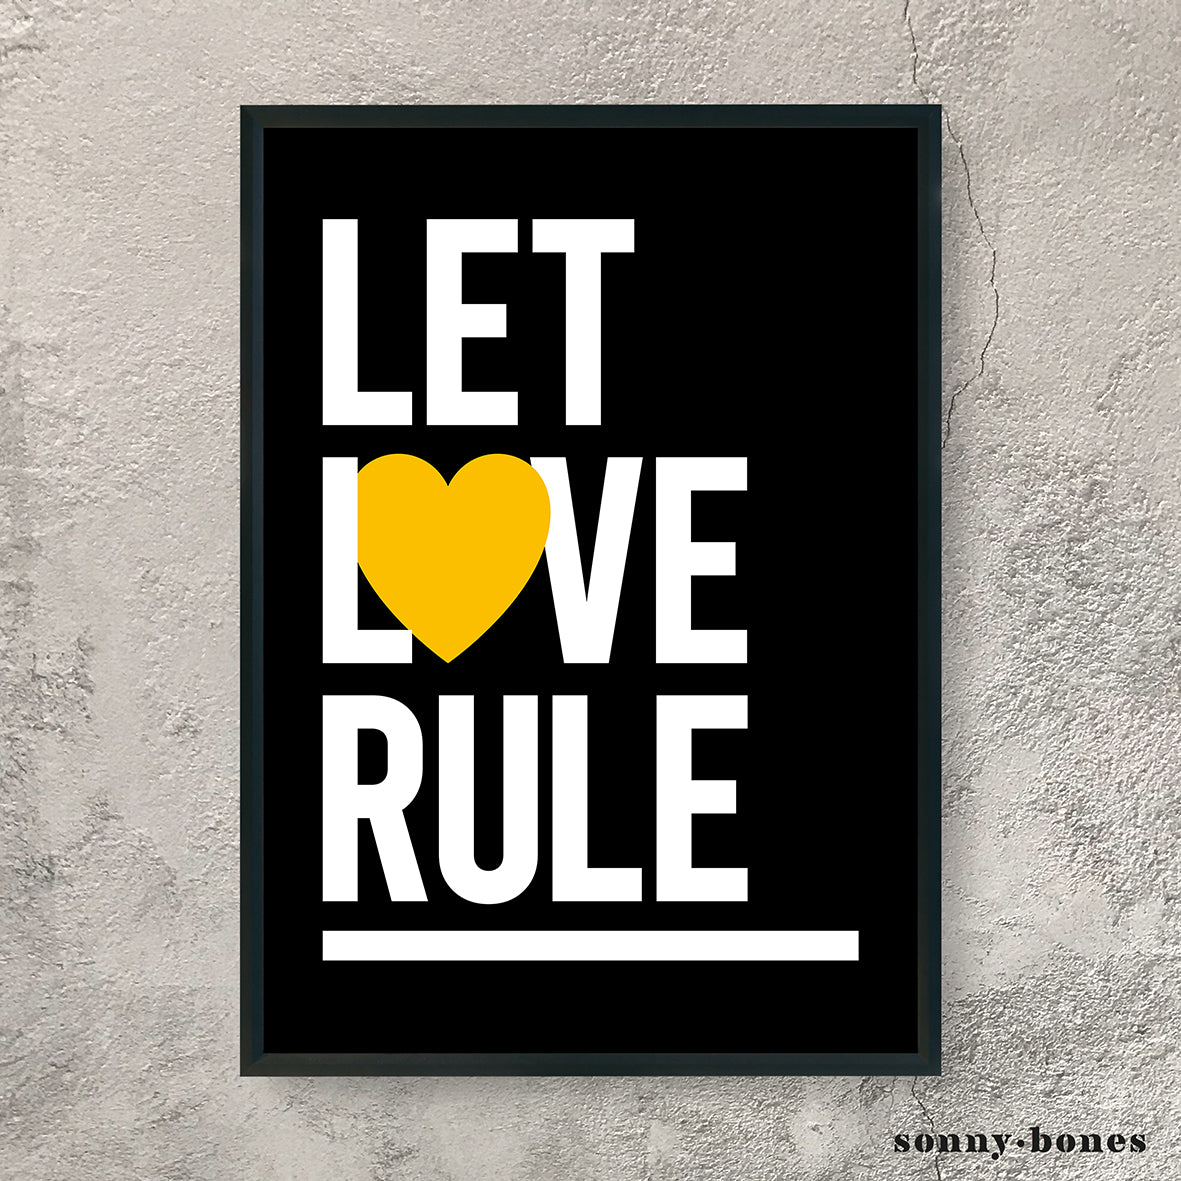 LET LOVE RULE (white/black/yellow)